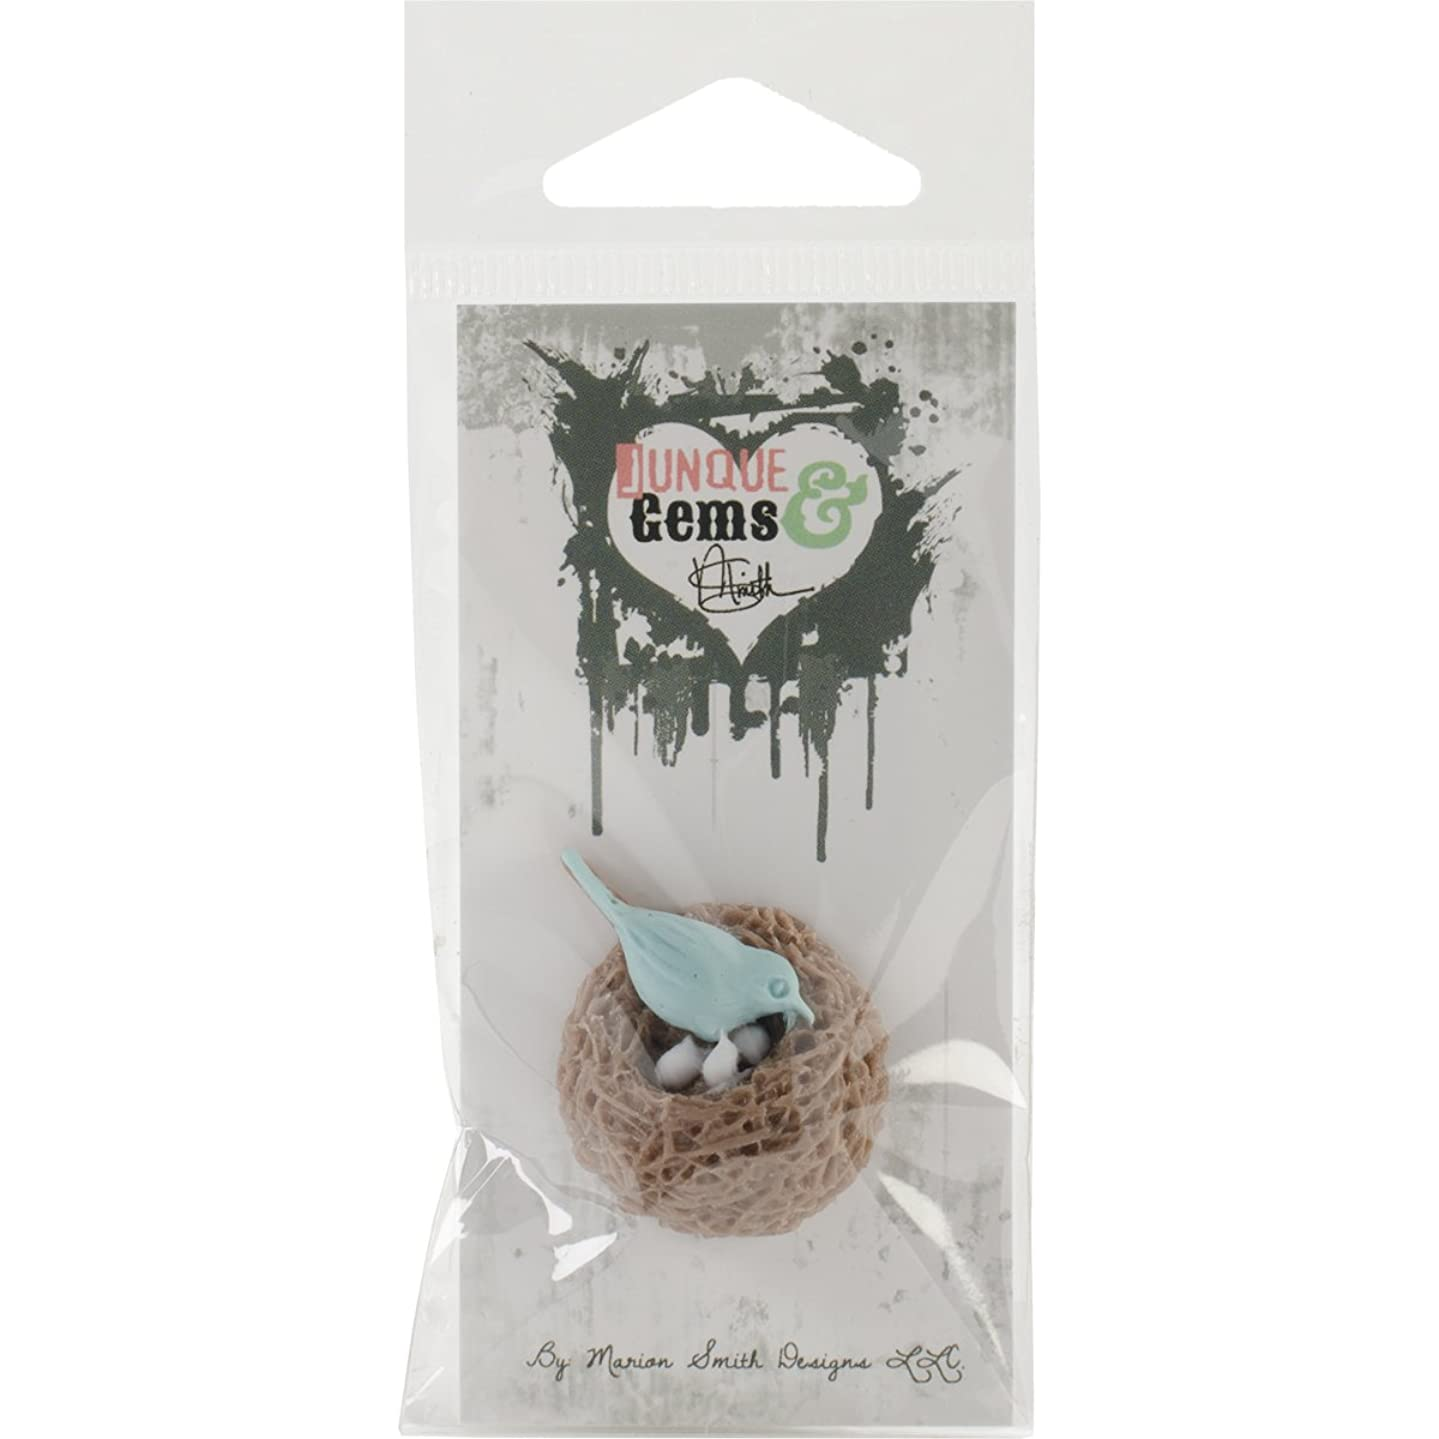 Marion Smith Designs MS101051 Junque and Gems Bird's Nest Resin Shape